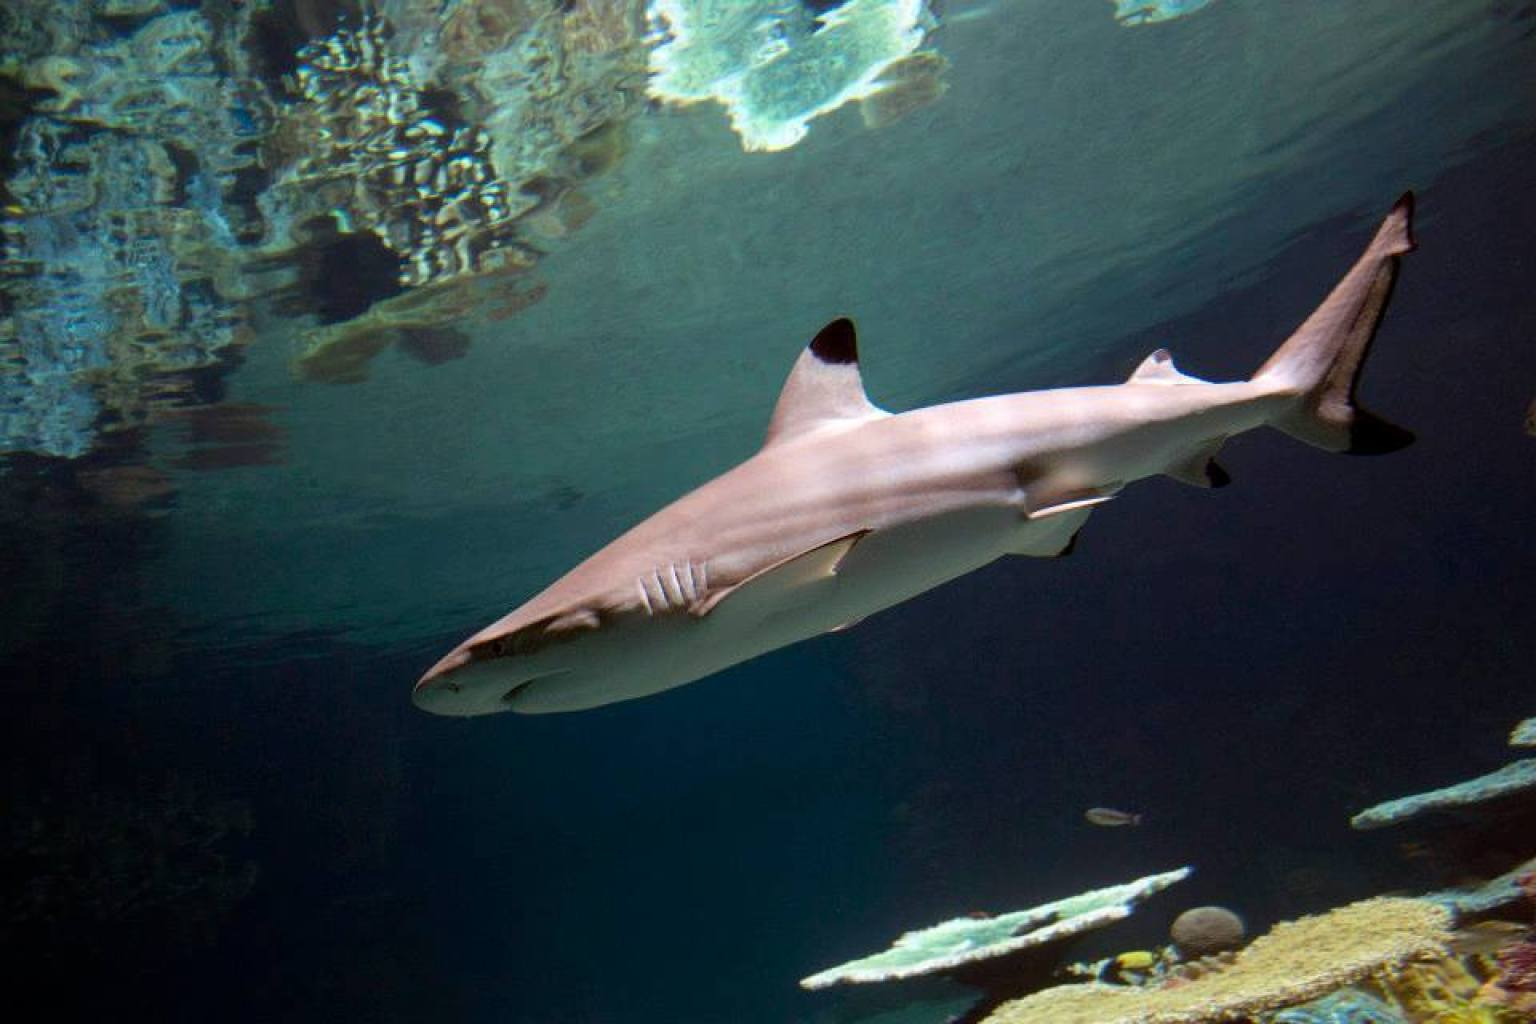 Baltimore National Aquarium's $13 Million Blacktip Reef ...